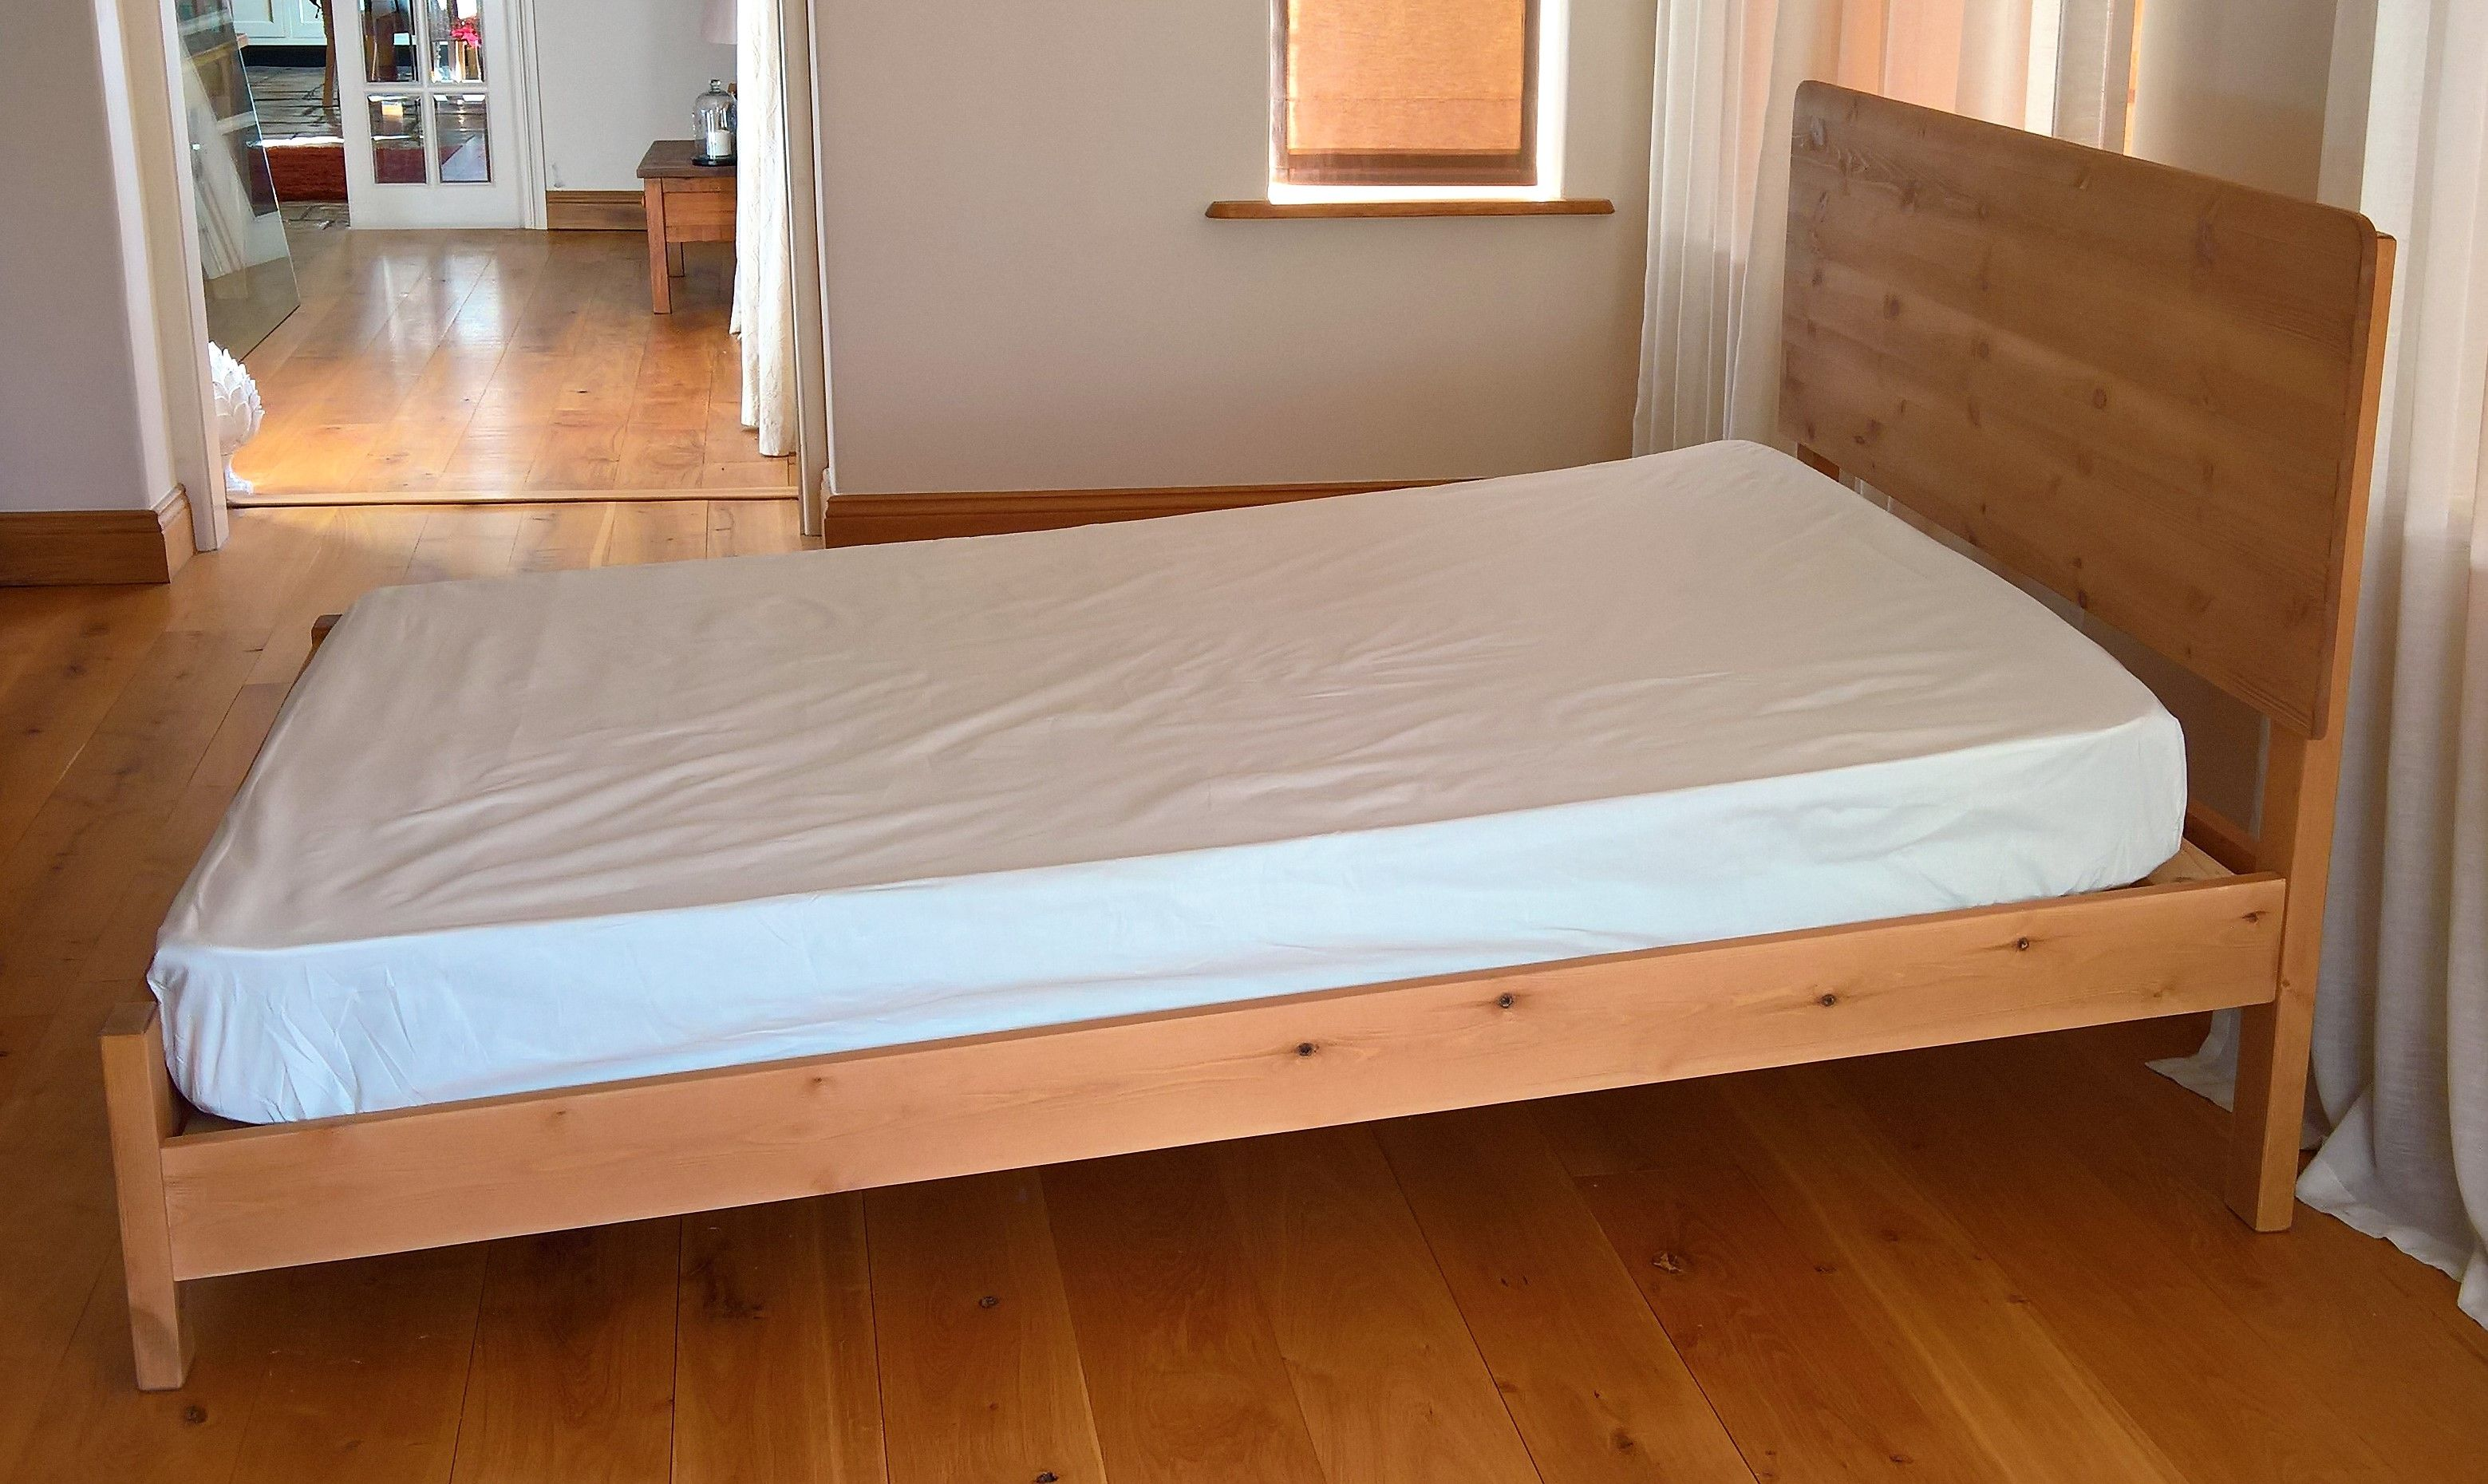 The Torr inclined bed frame Bed frame, Bed, Adjustable